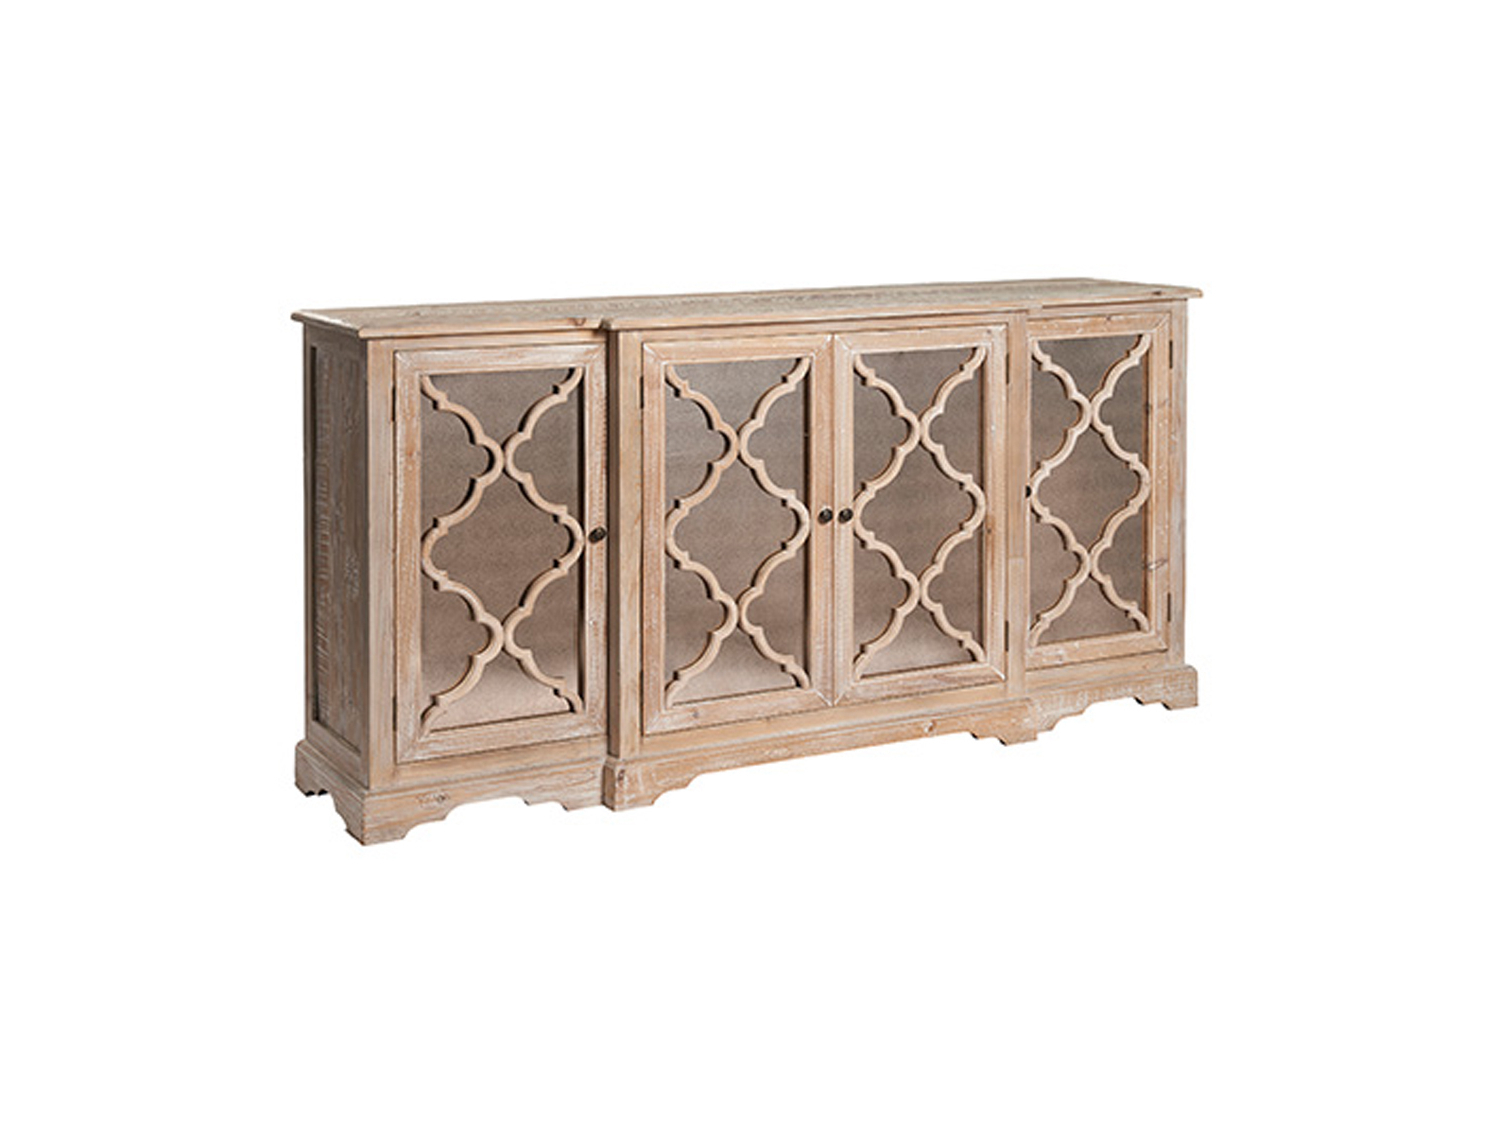 Acepello Lowery Four Door Sideboard From Dansk With Most Up To Date Ruskin Sideboards (View 14 of 20)